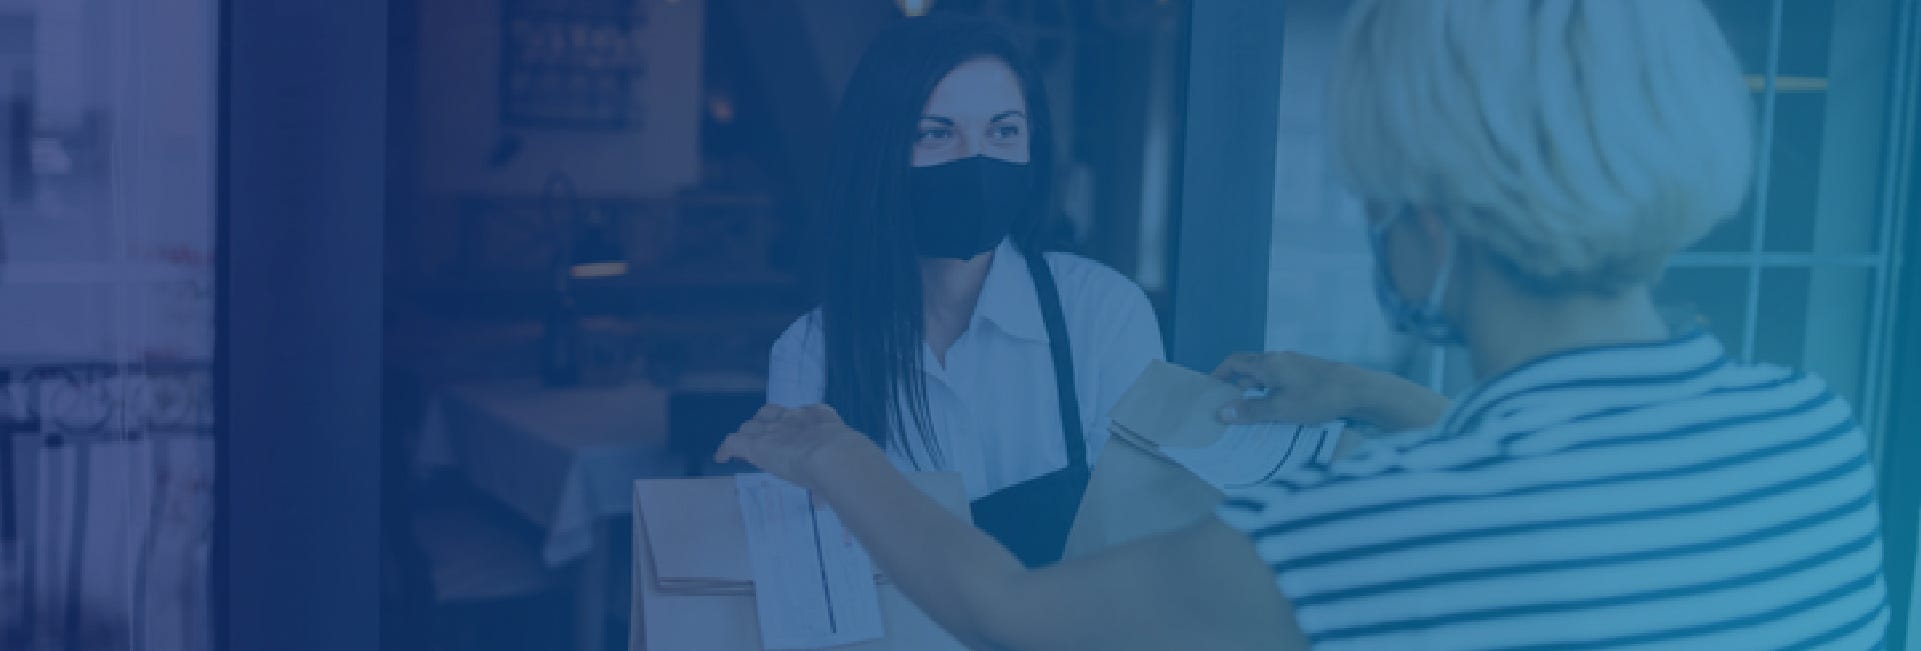 Woman wearing face mask taking two bags of takeaway food from restaurant worker wearing apron and face mask